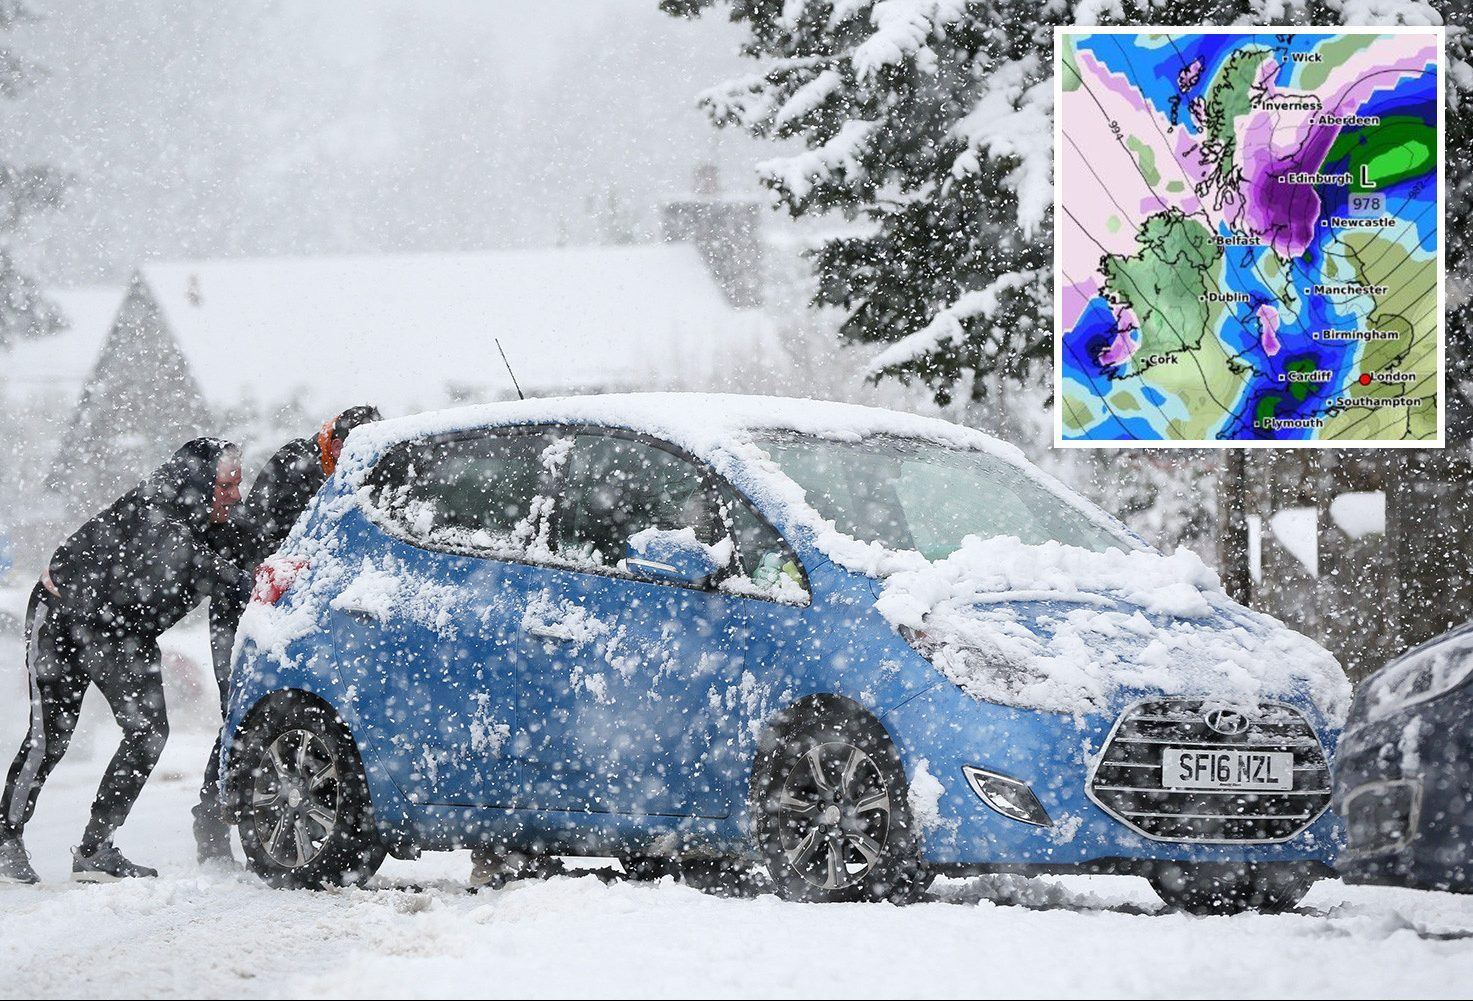 UK weather forecast: SEVERE Met Office warning as Storm Hannah SNOW set to bury Britain